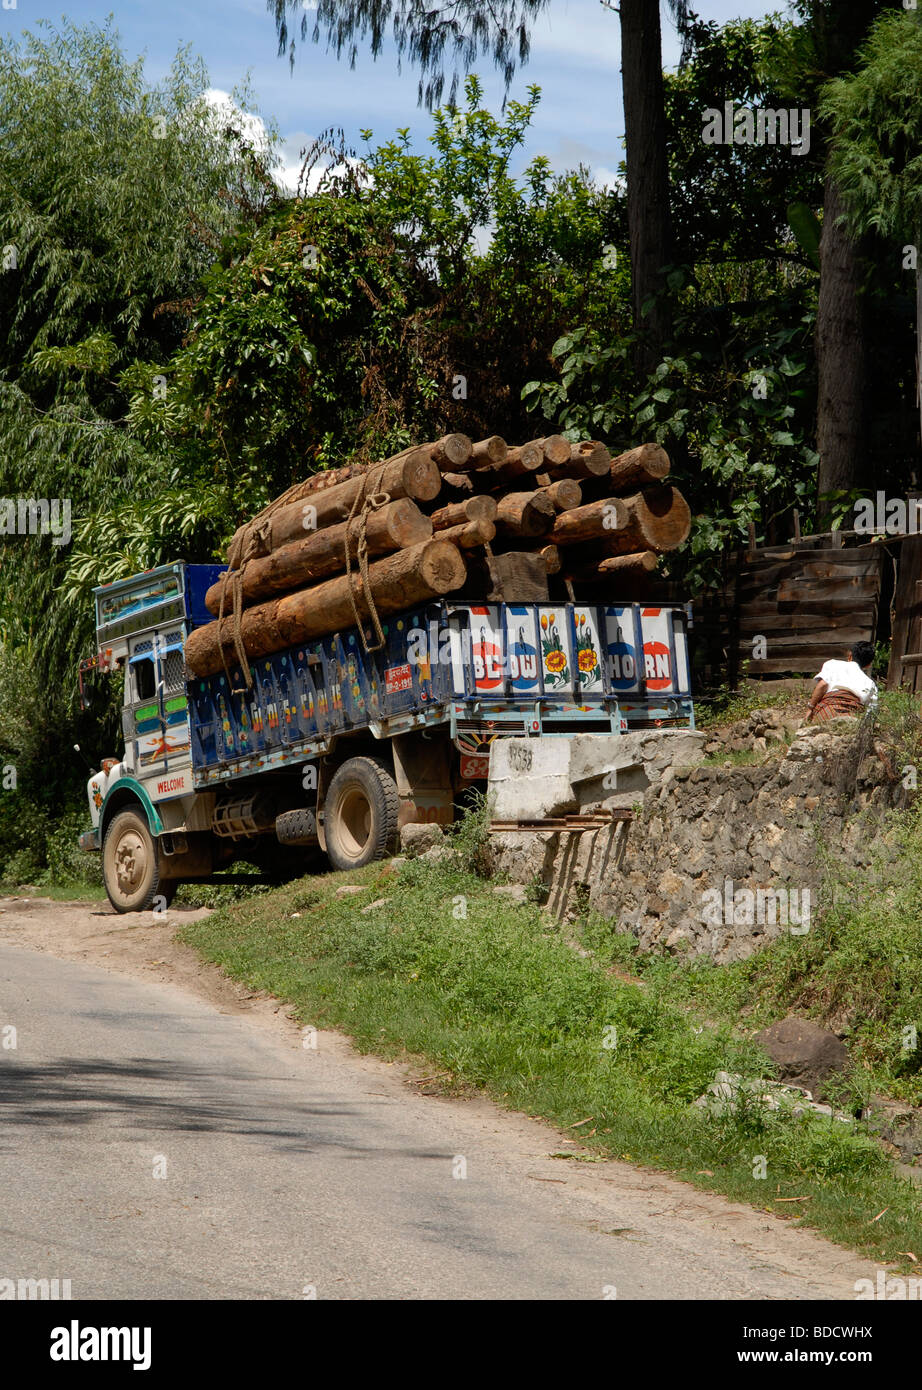 A lorry excessively loaded with trunks near Wangdue, Bhutan - Stock Image